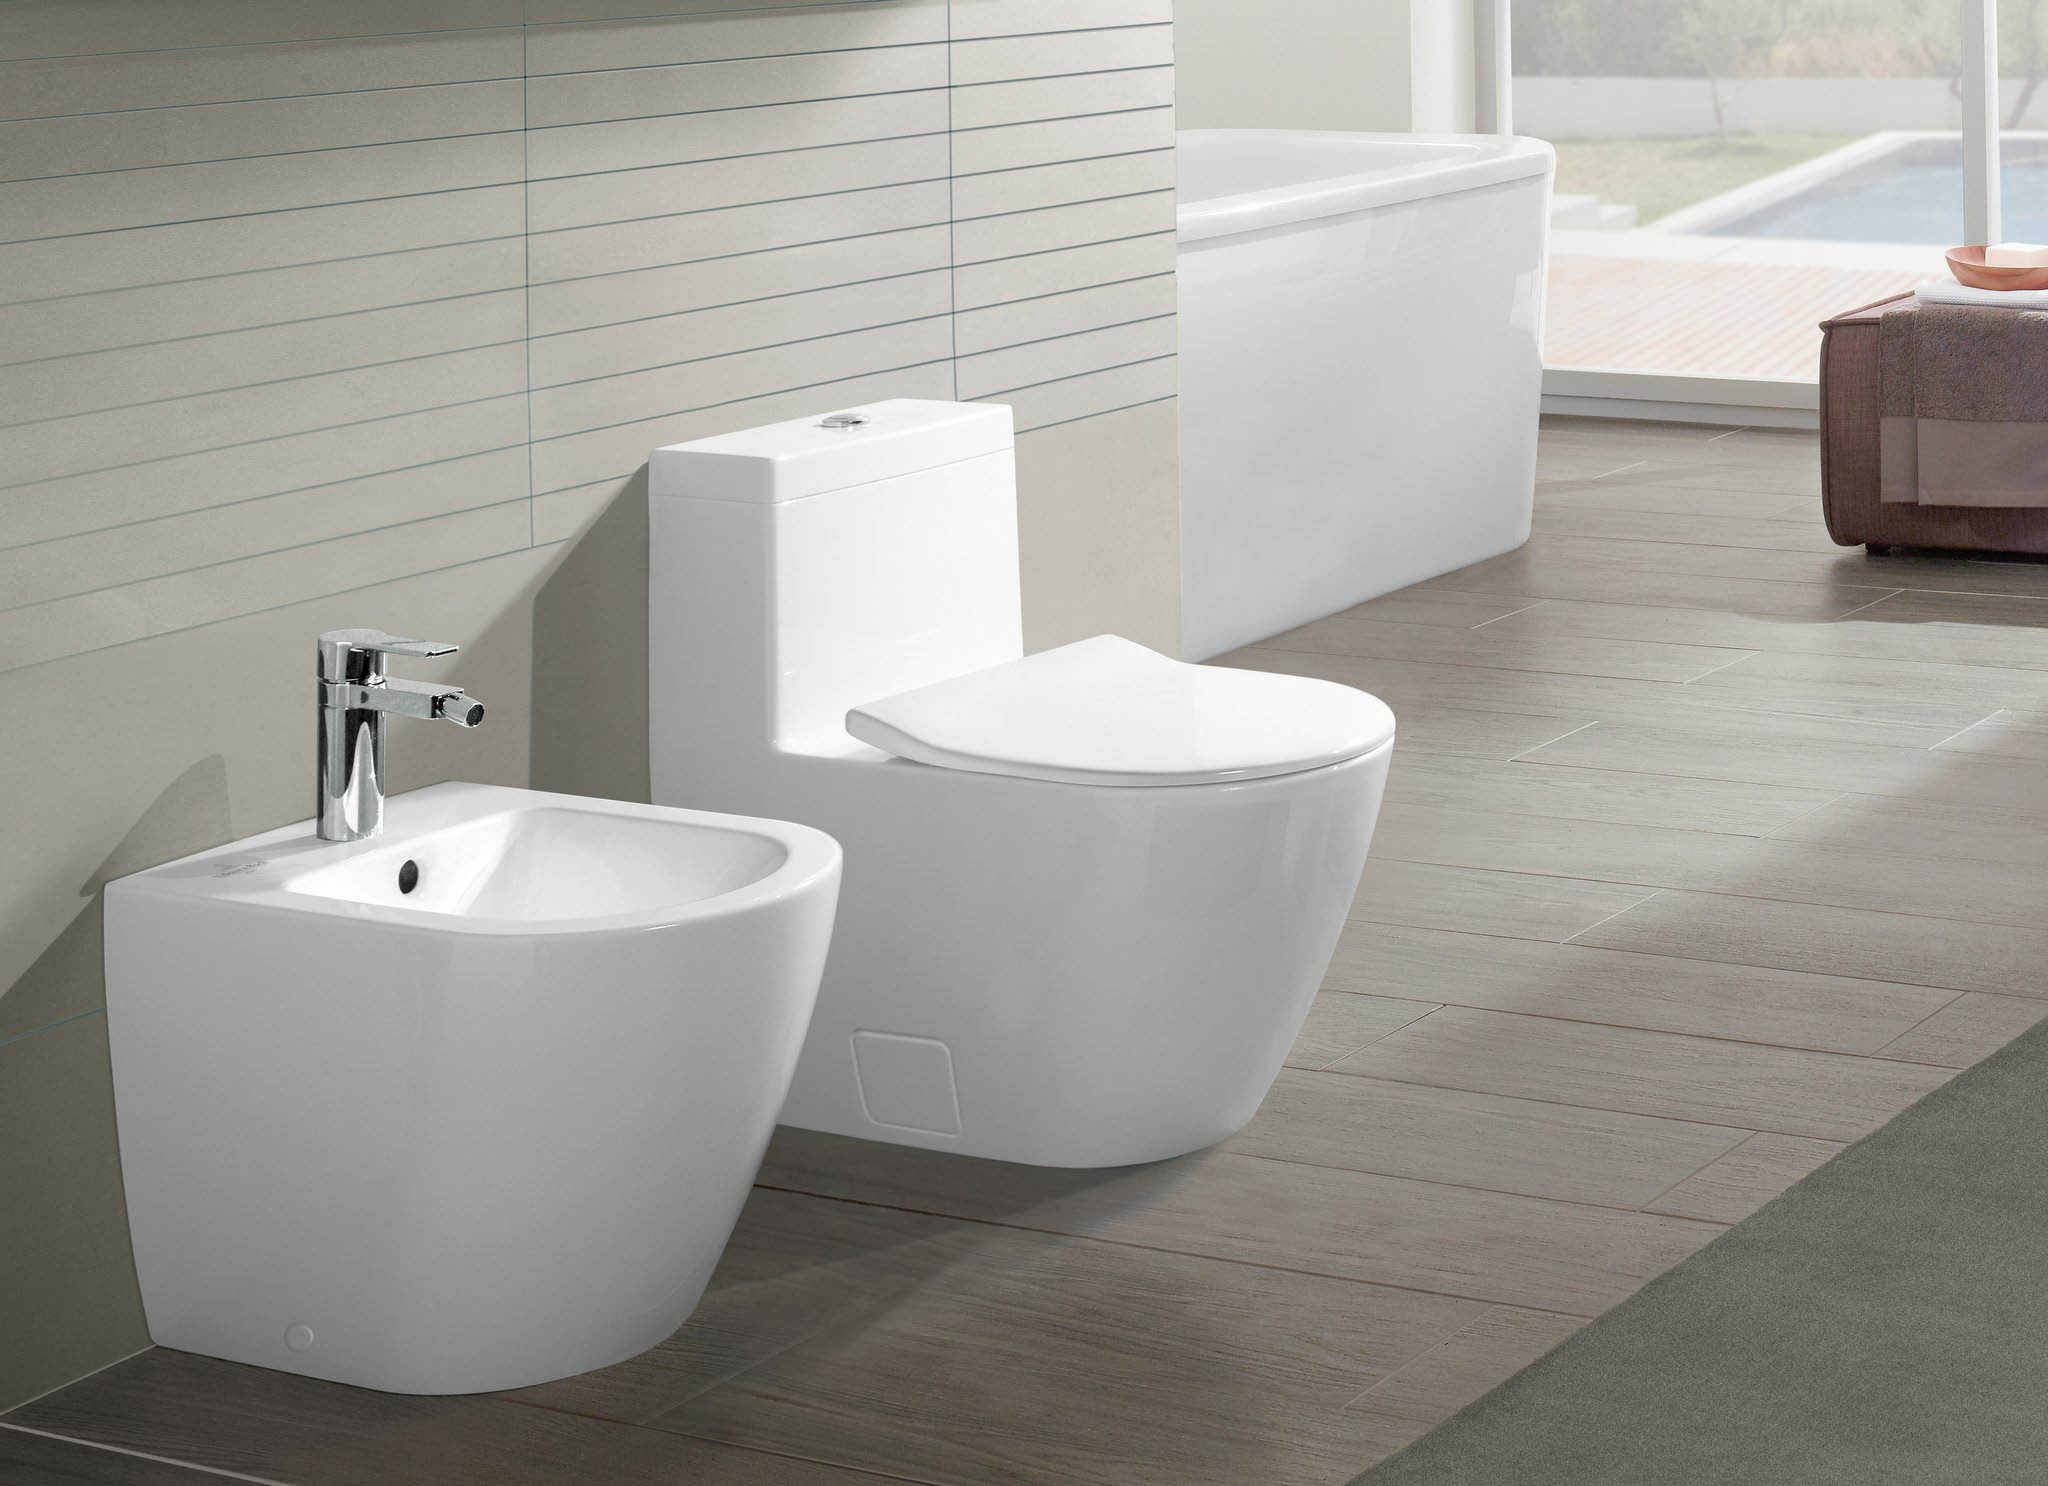 matching side by side white ceramic floor mounted toilet and bidet